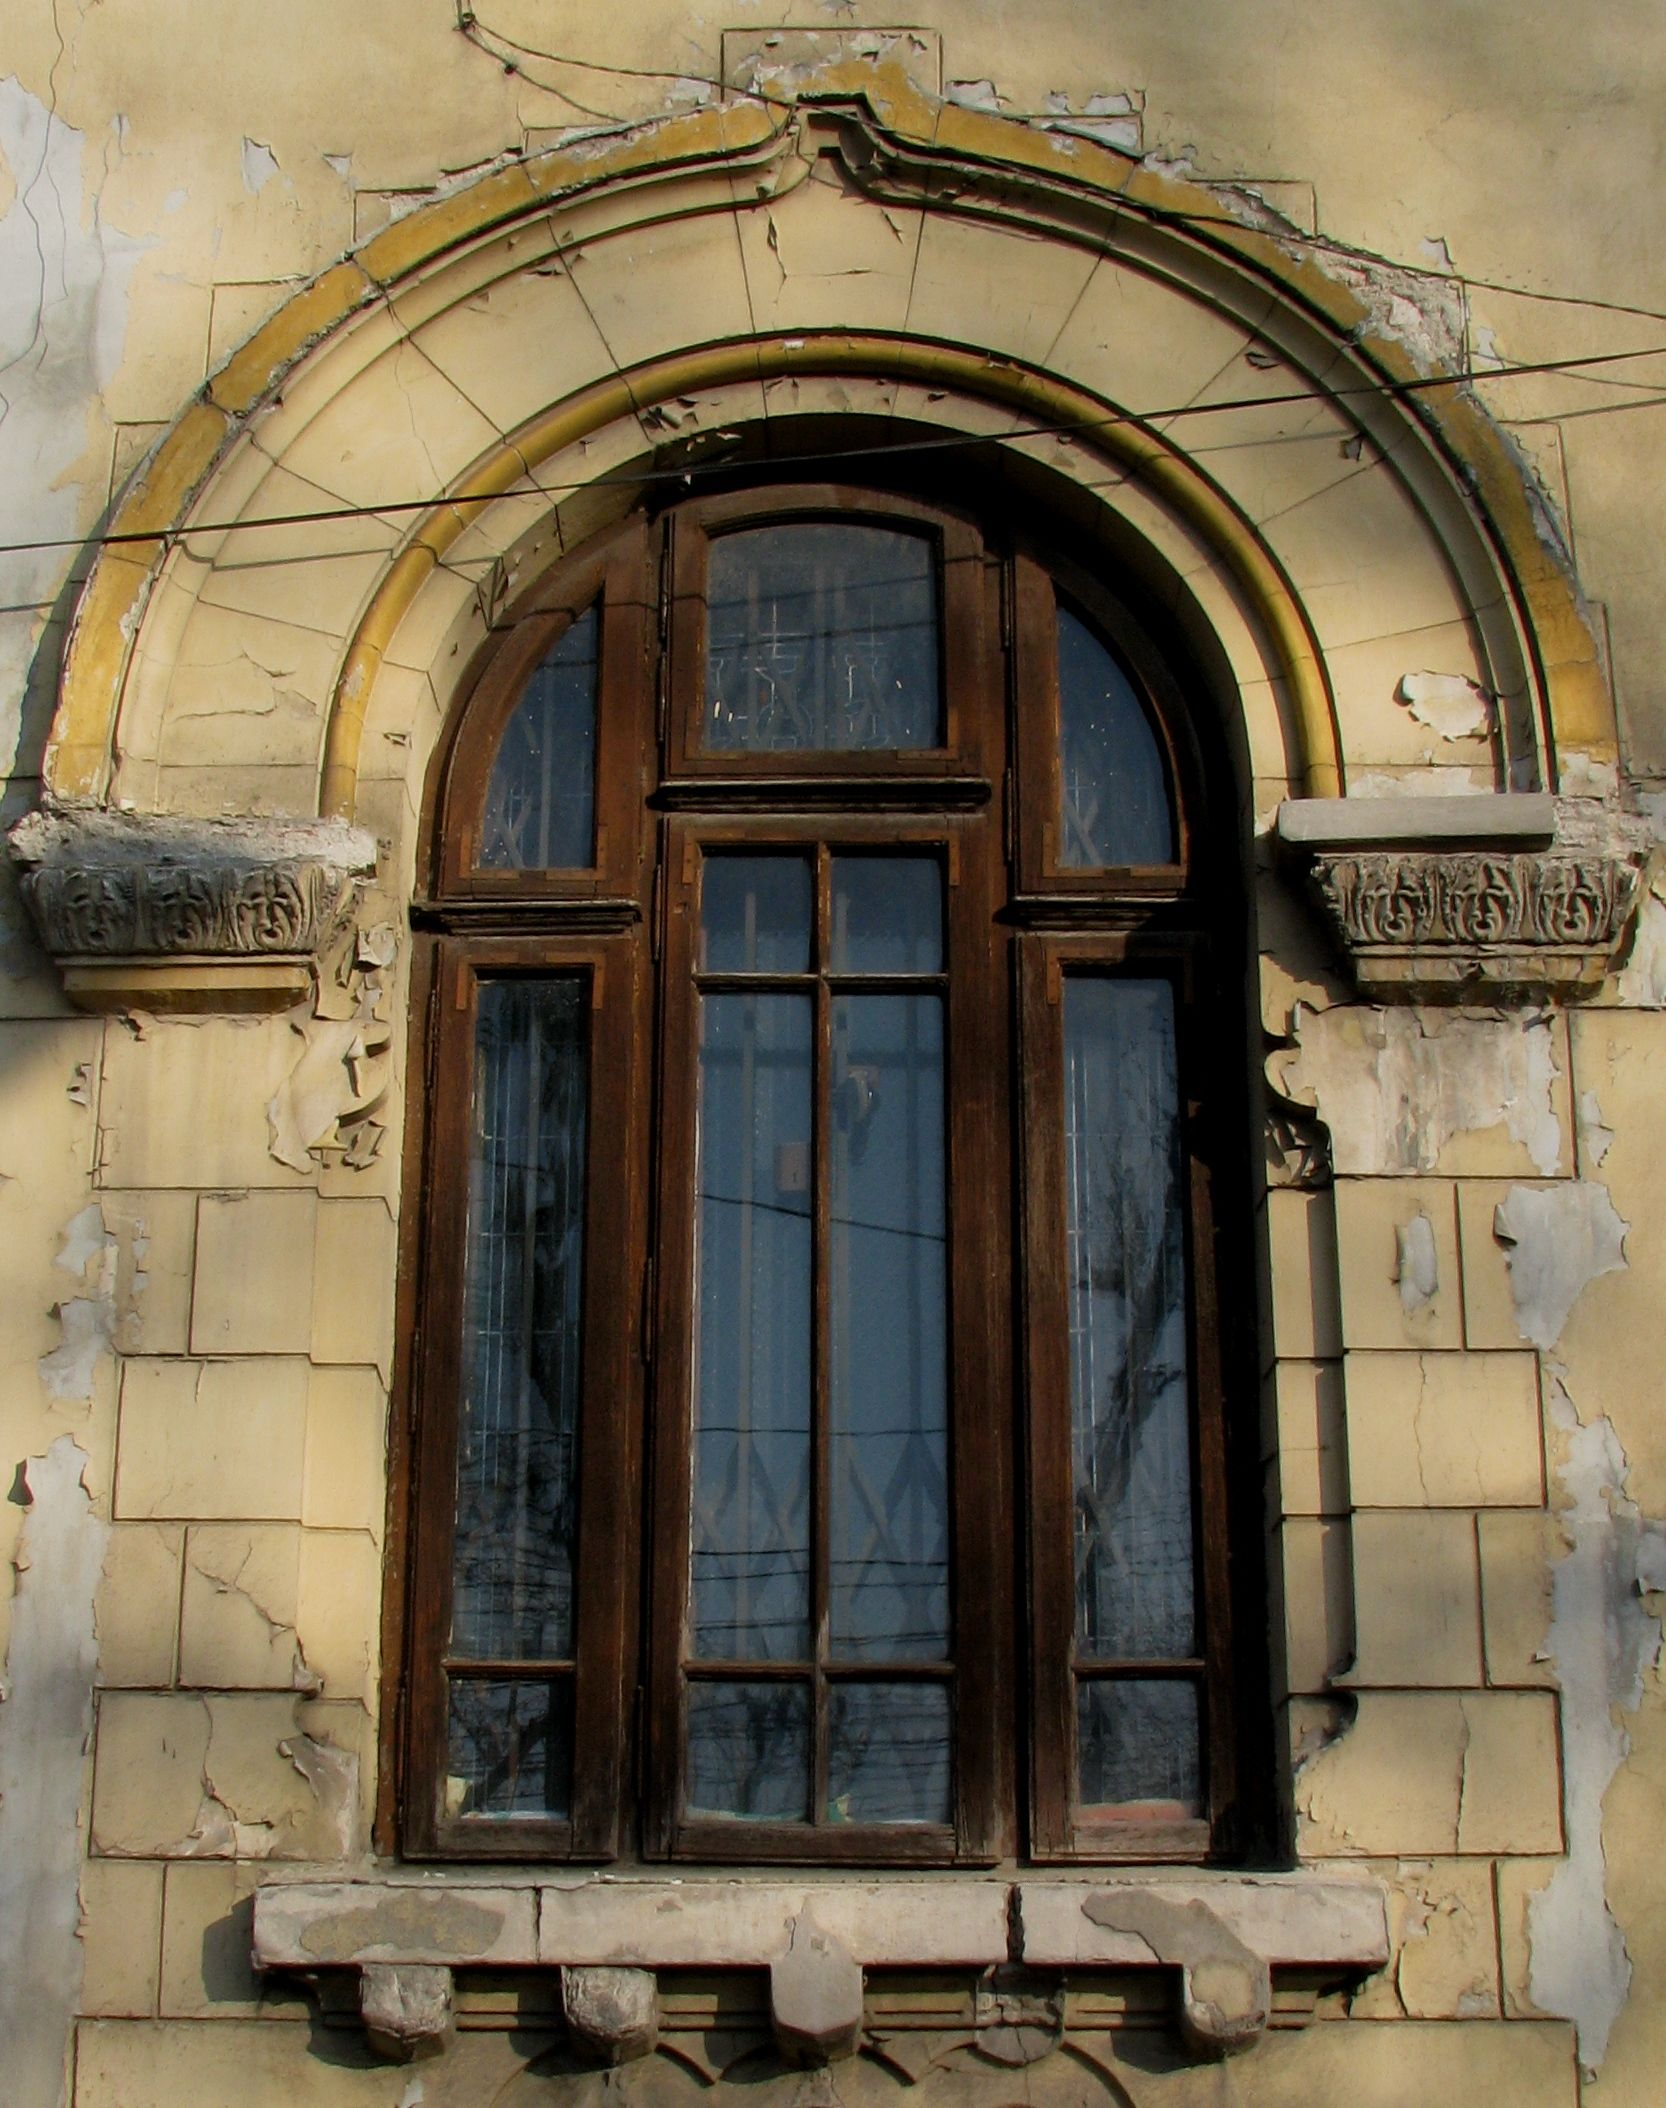 House Window Styles - Find this pin and more on window structure neo romanian style house